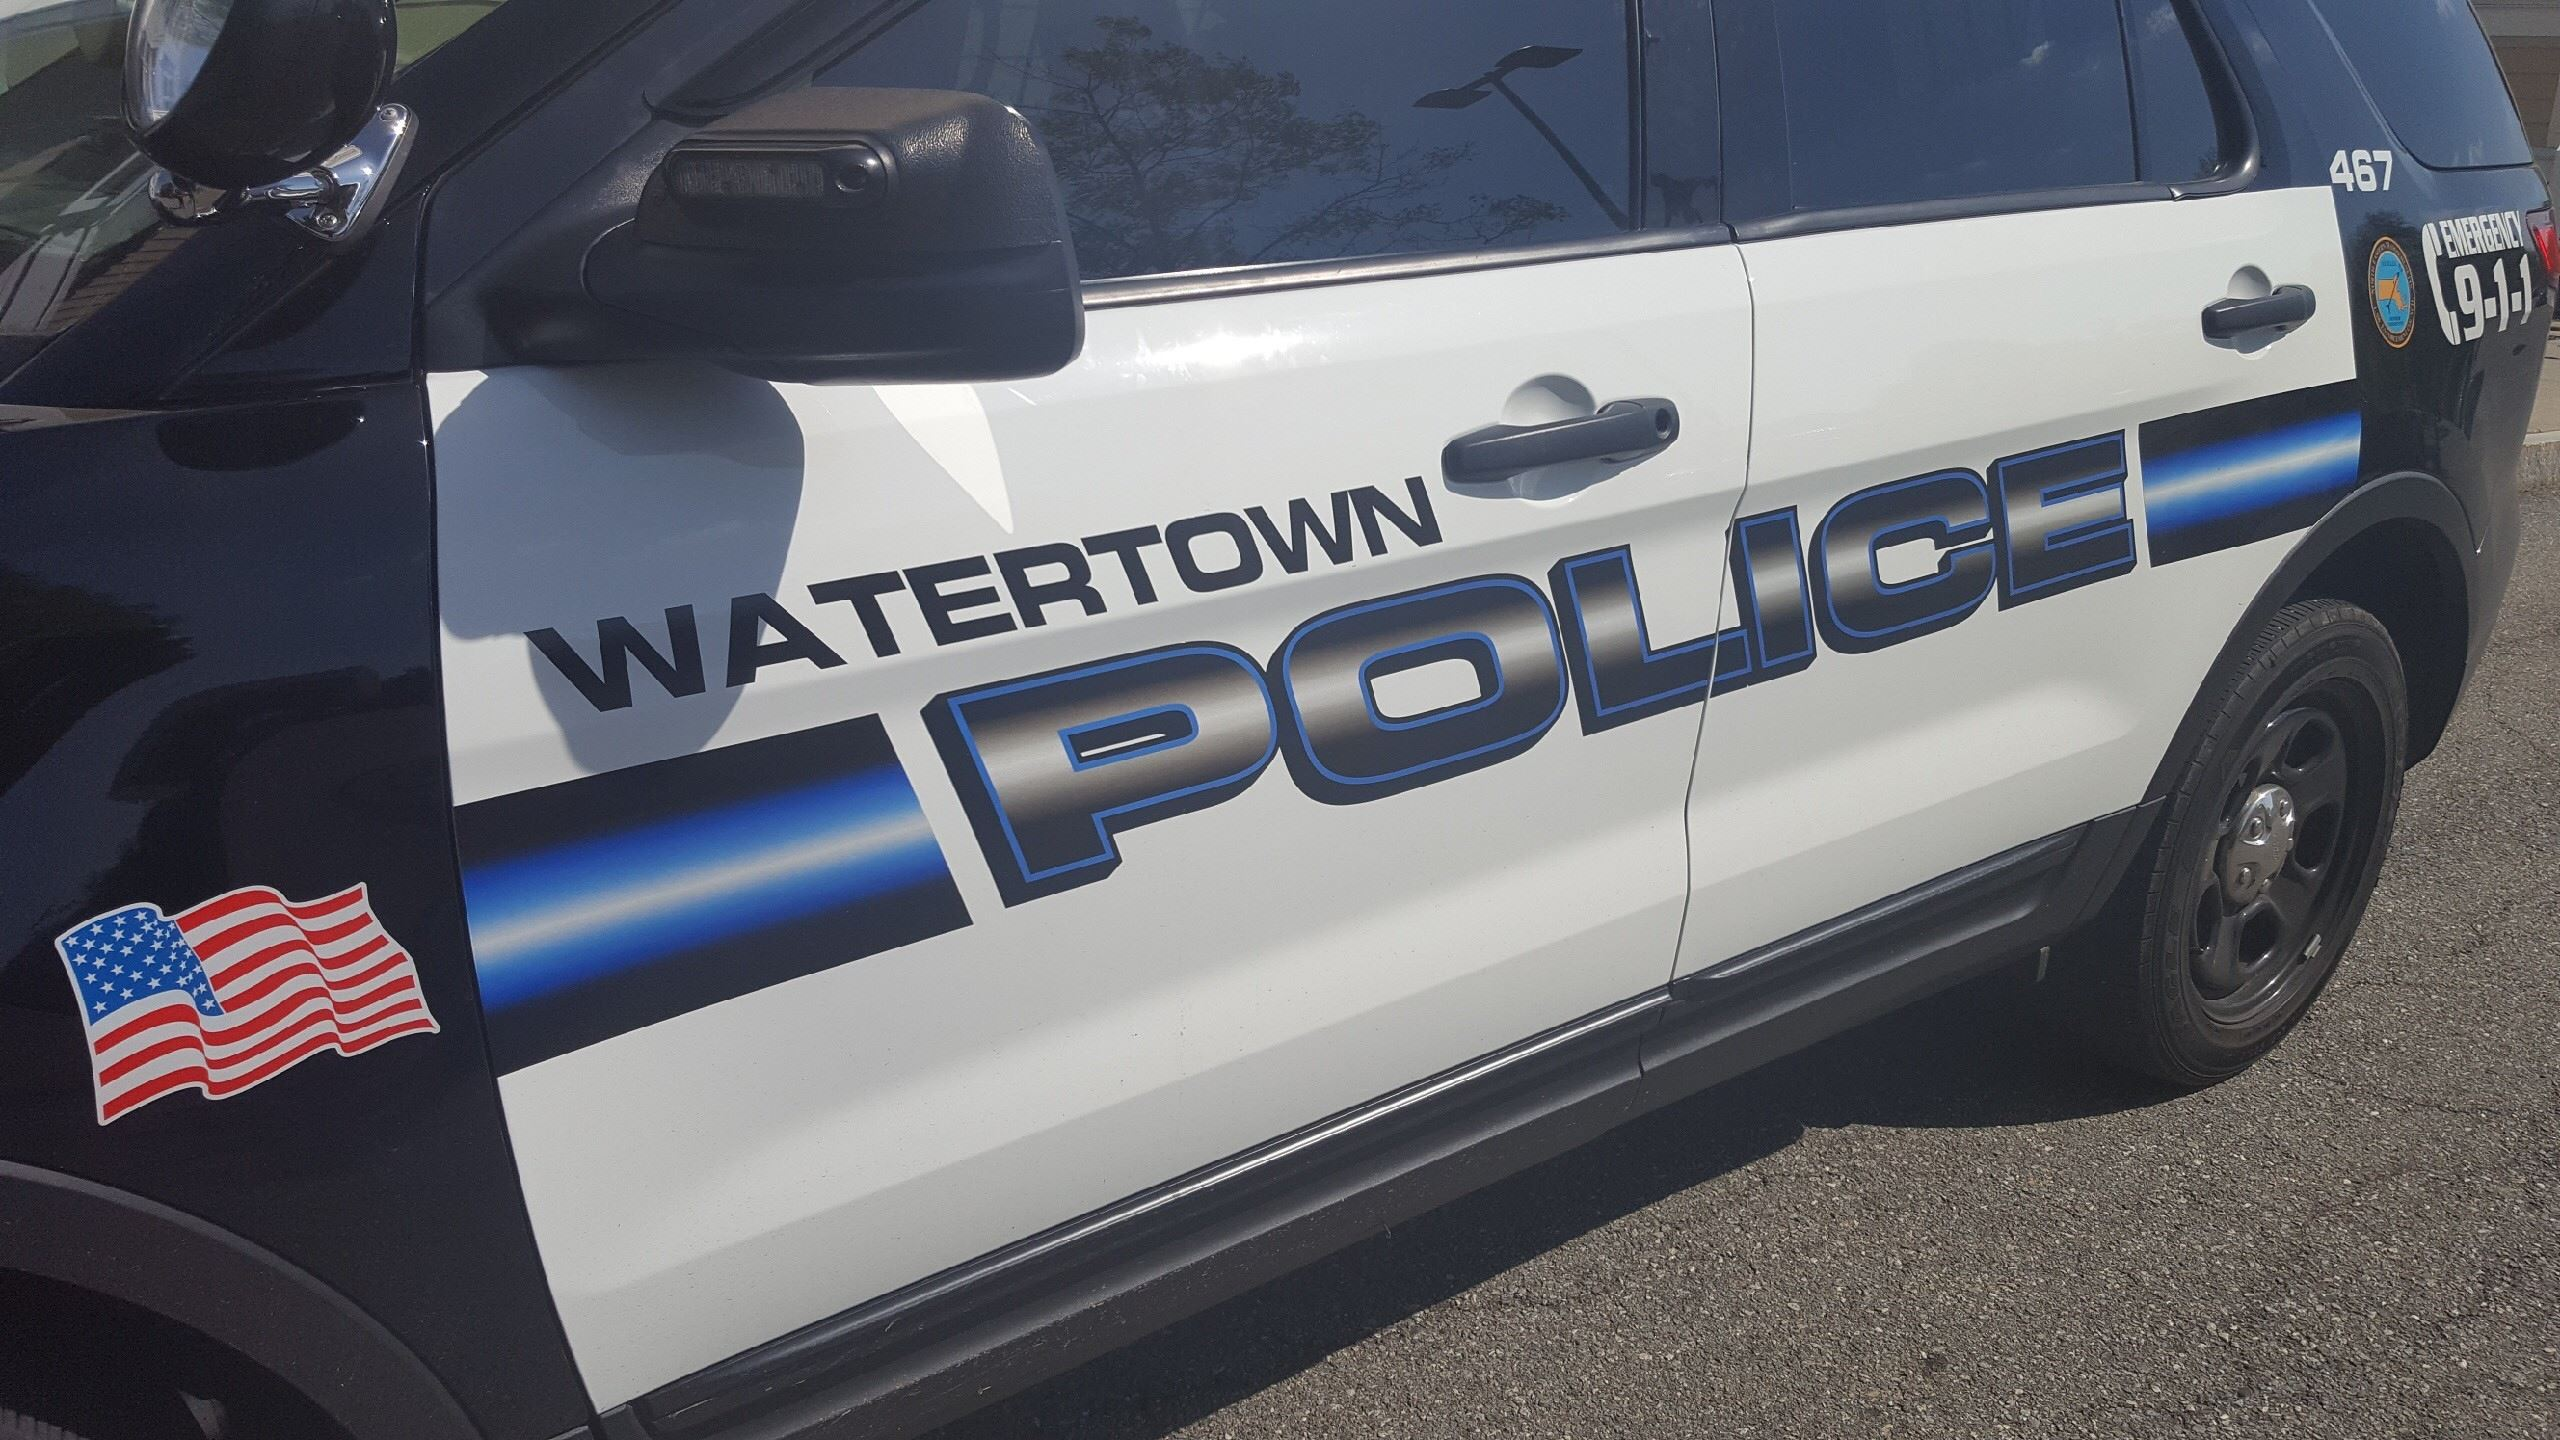 Watertown PD Cruiser